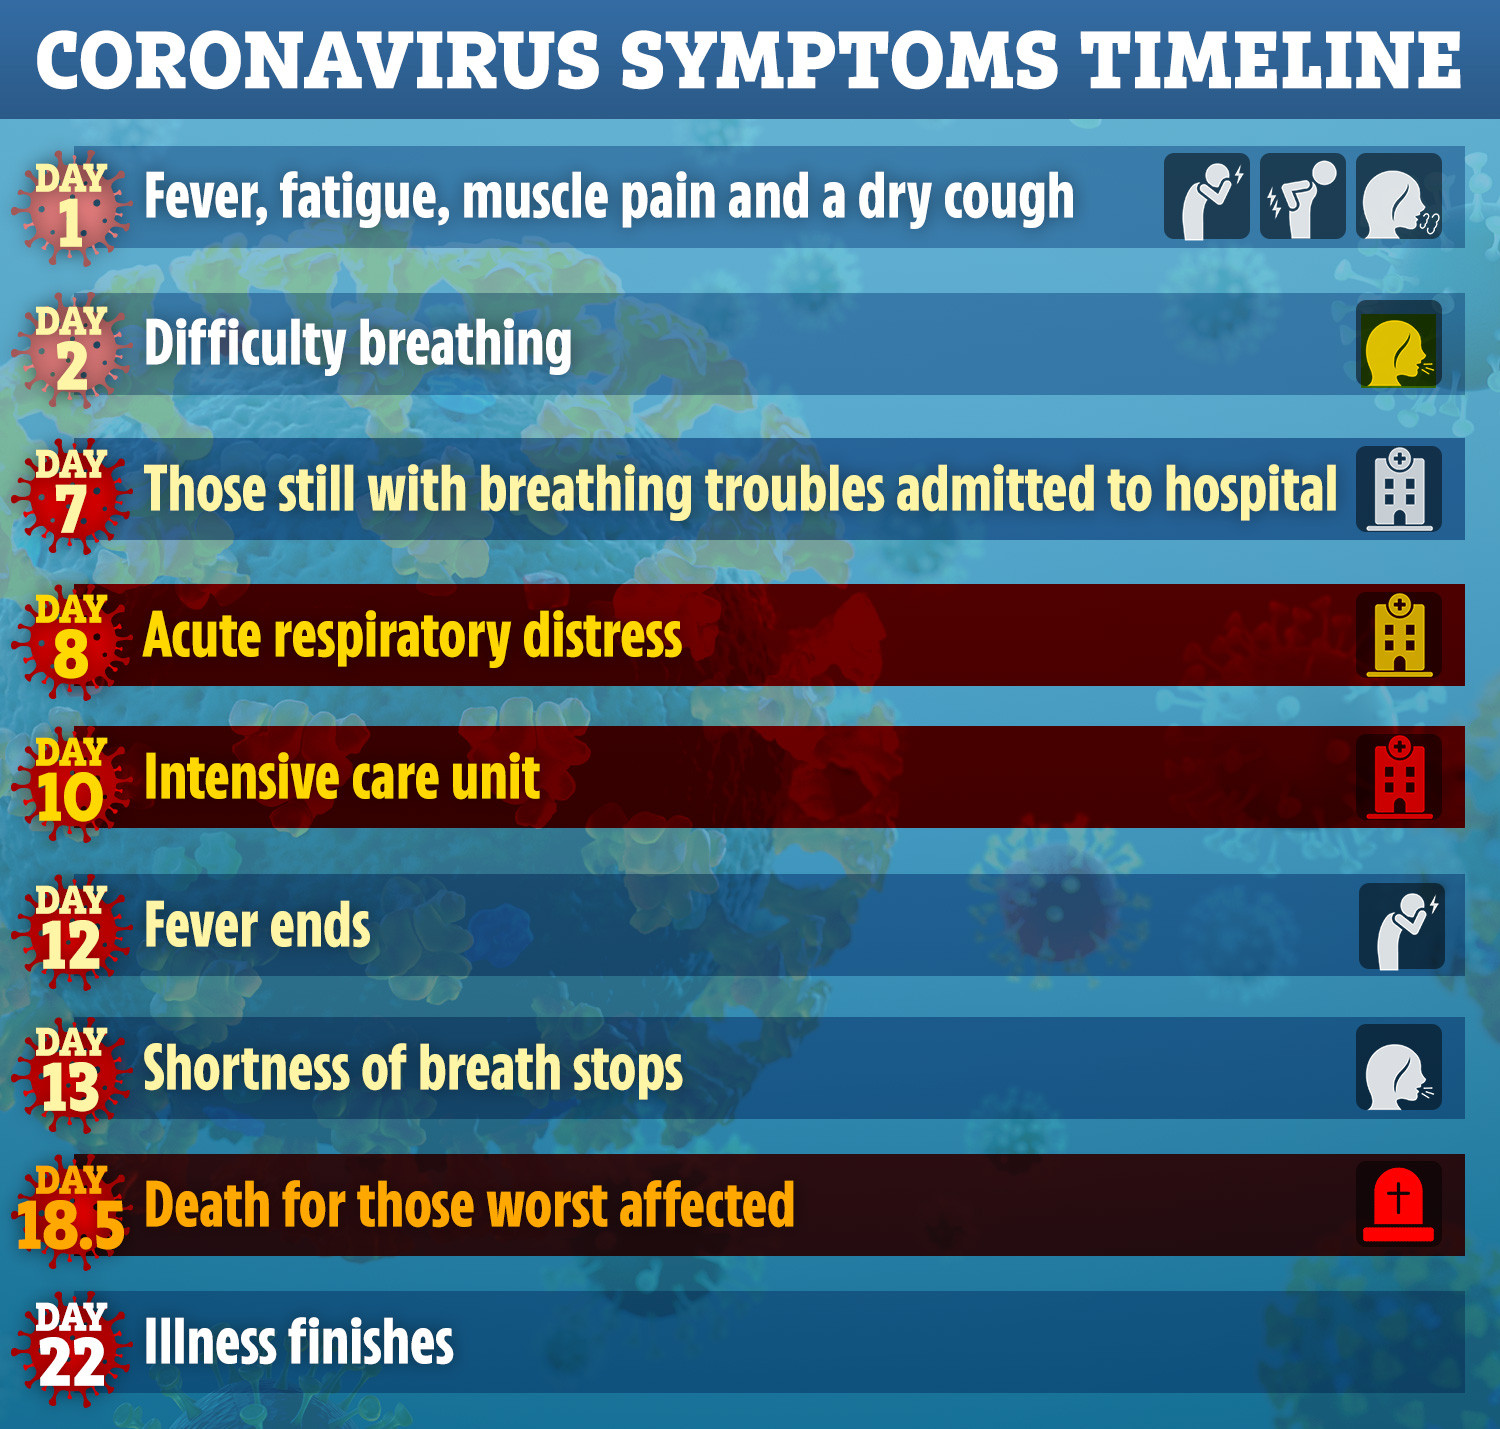 Scientists have produced a day-by-day breakdown of the typical Covid-19 symptoms